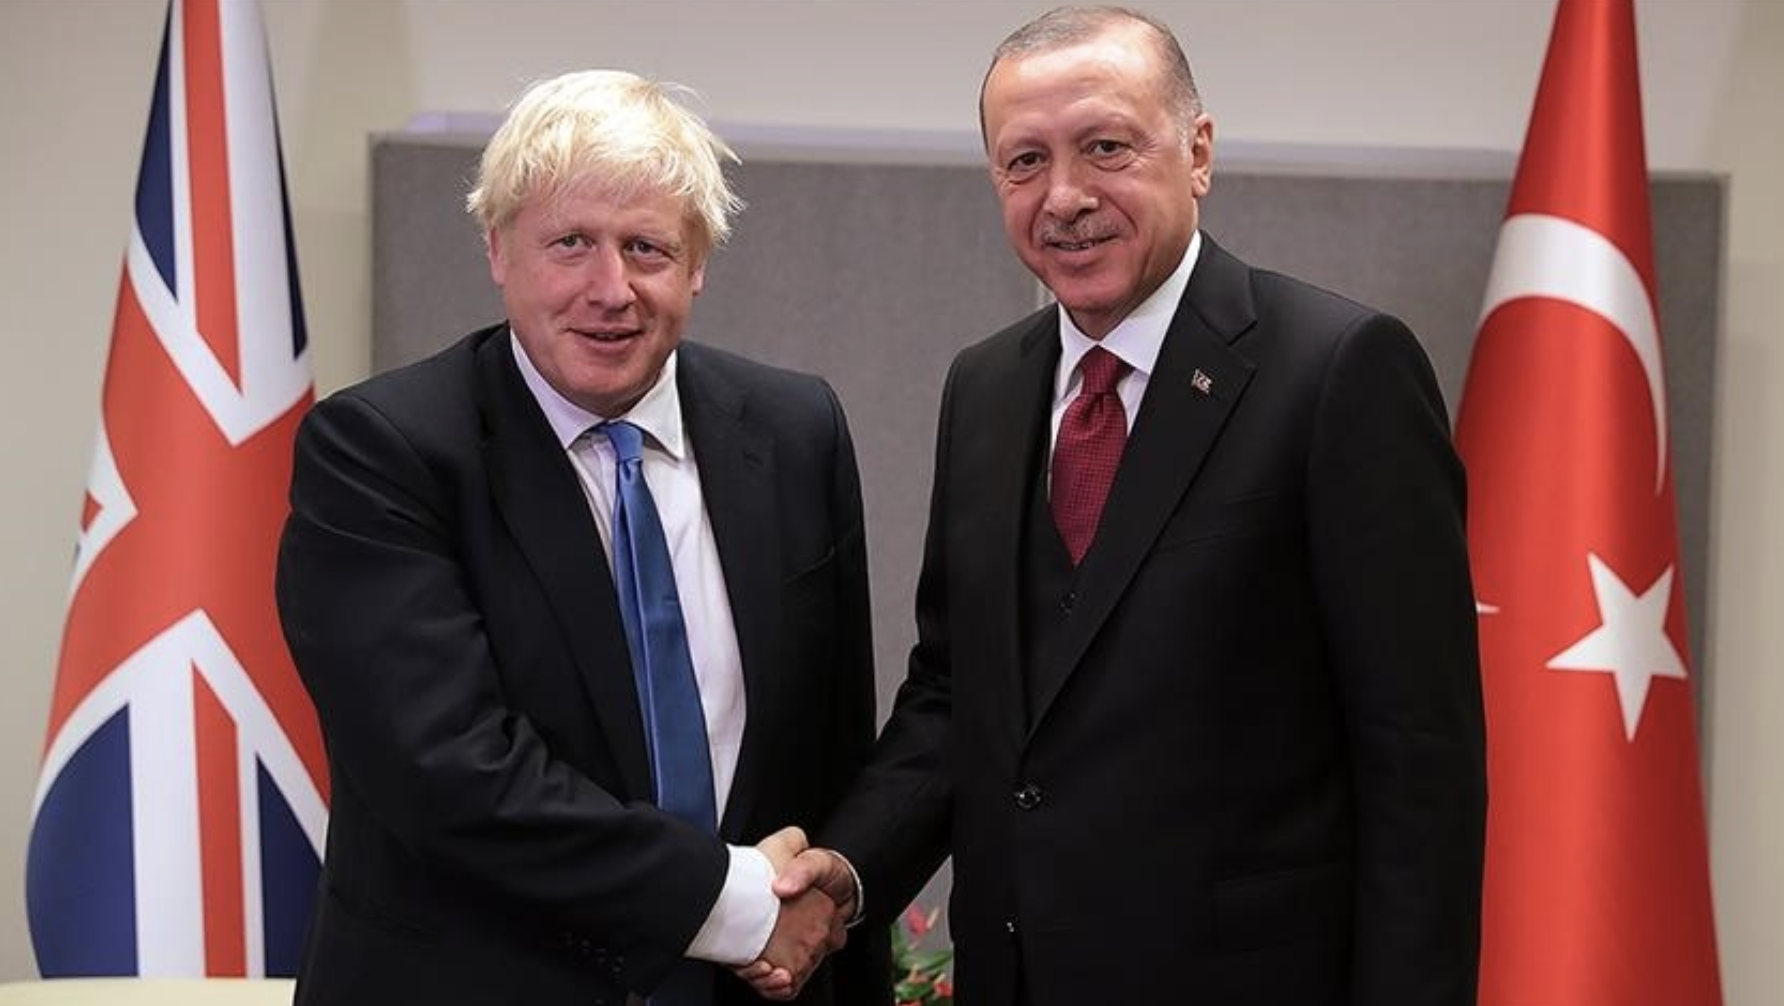 Turkey: Erdogan and Johnson speak over the phone